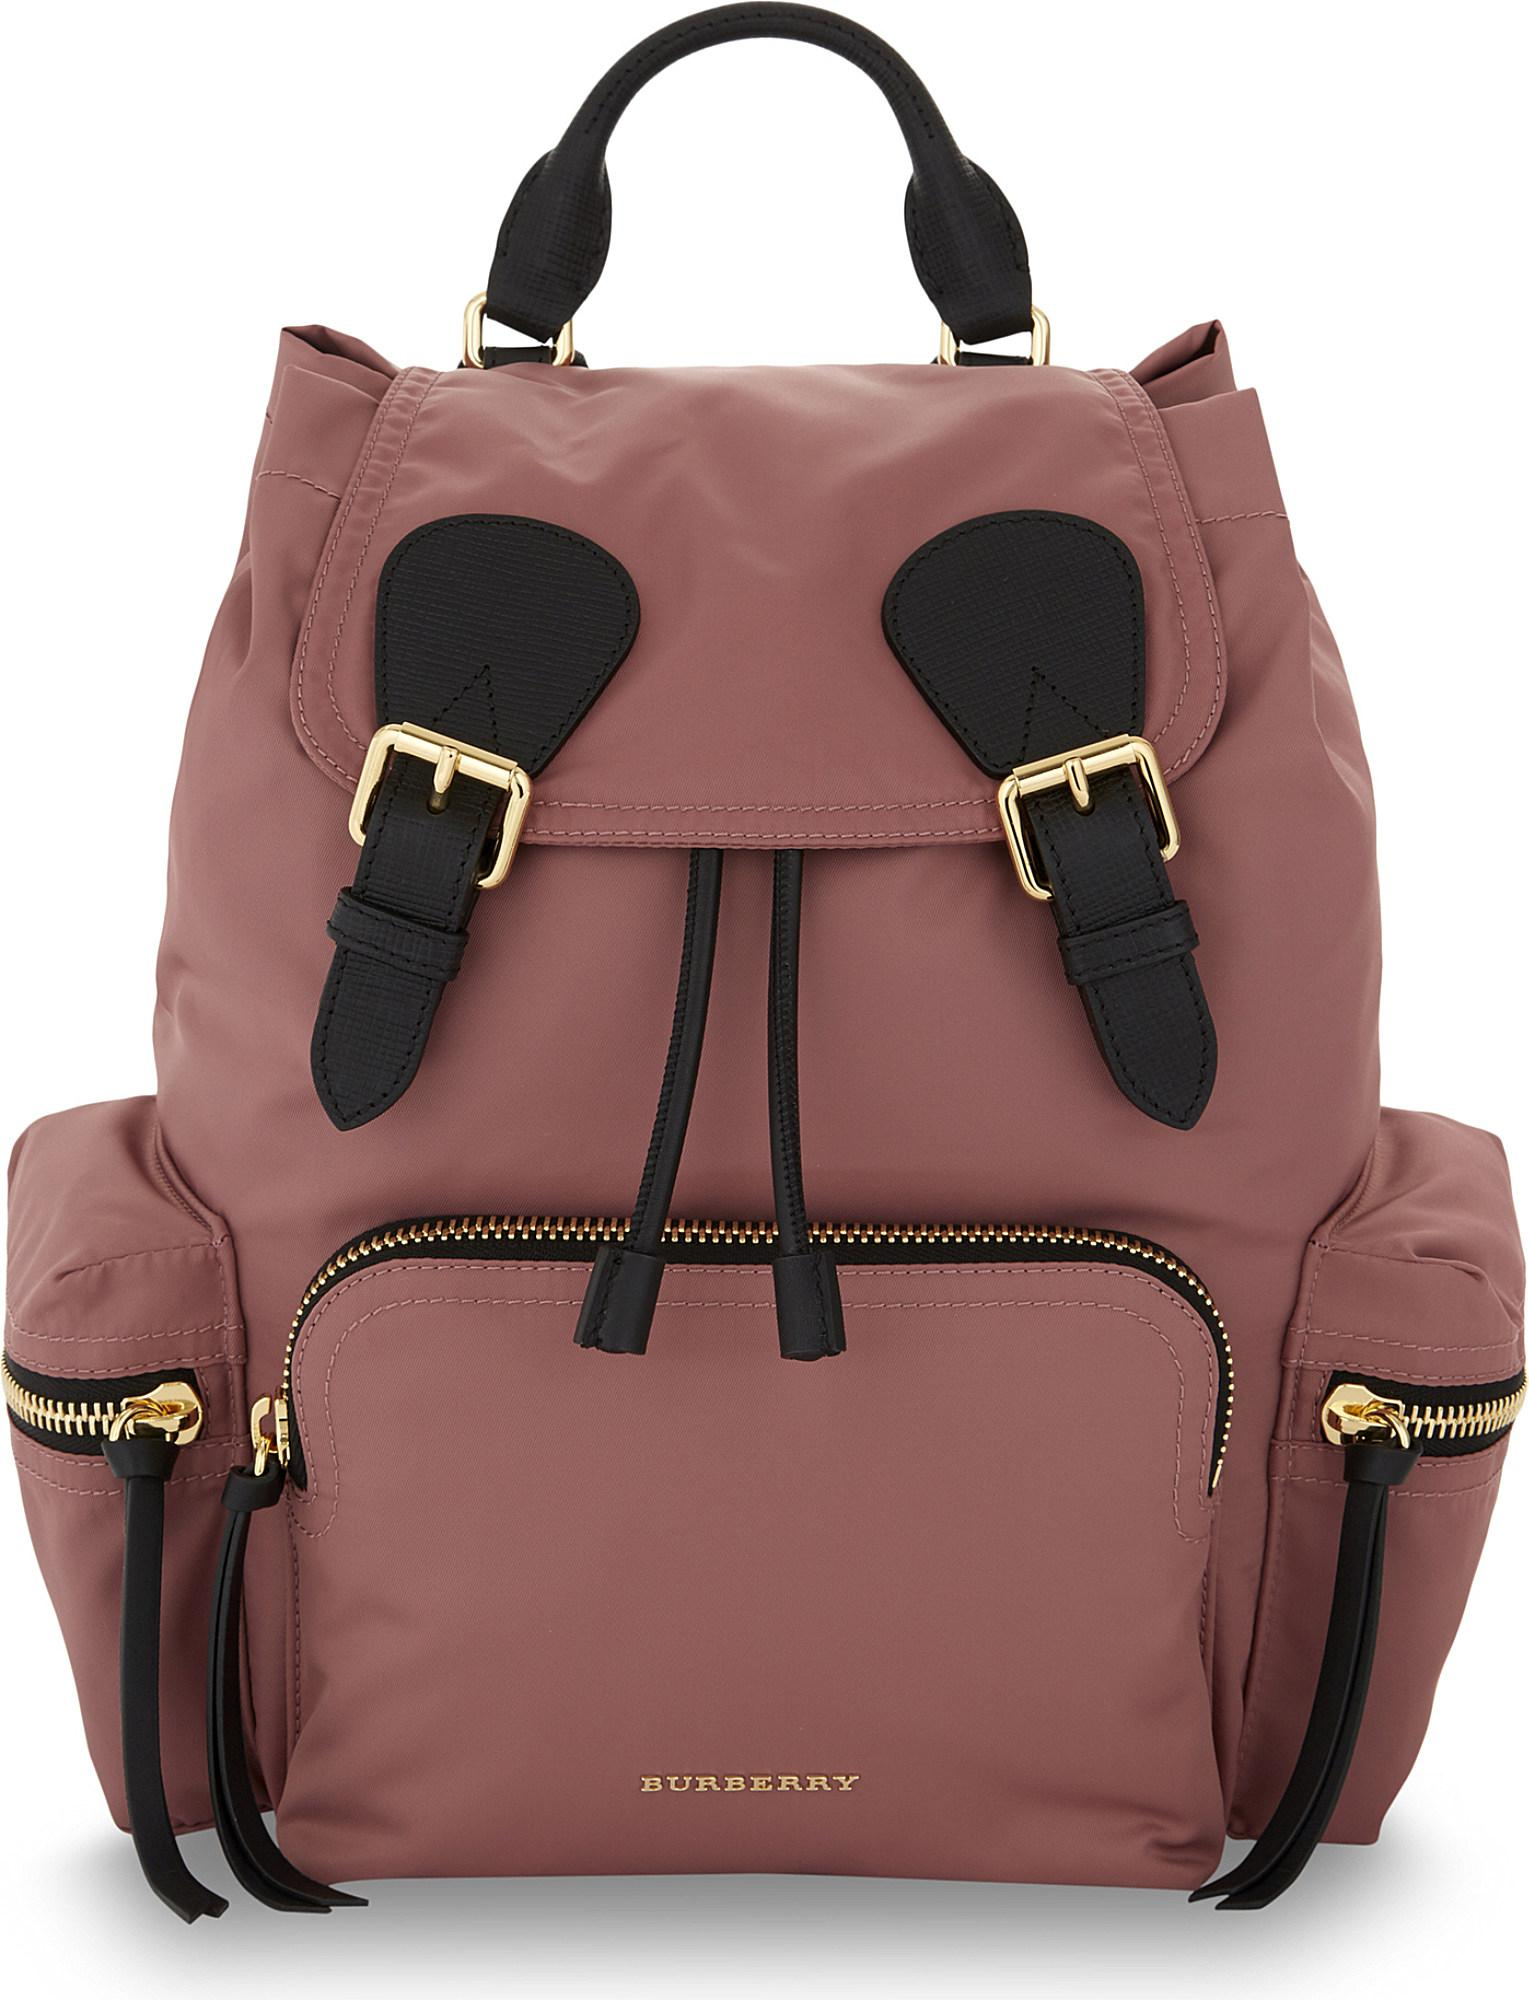 Burberry - Purple Prorsum Medium Nylon Backpack - Lyst. View fullscreen 27c804abf647b